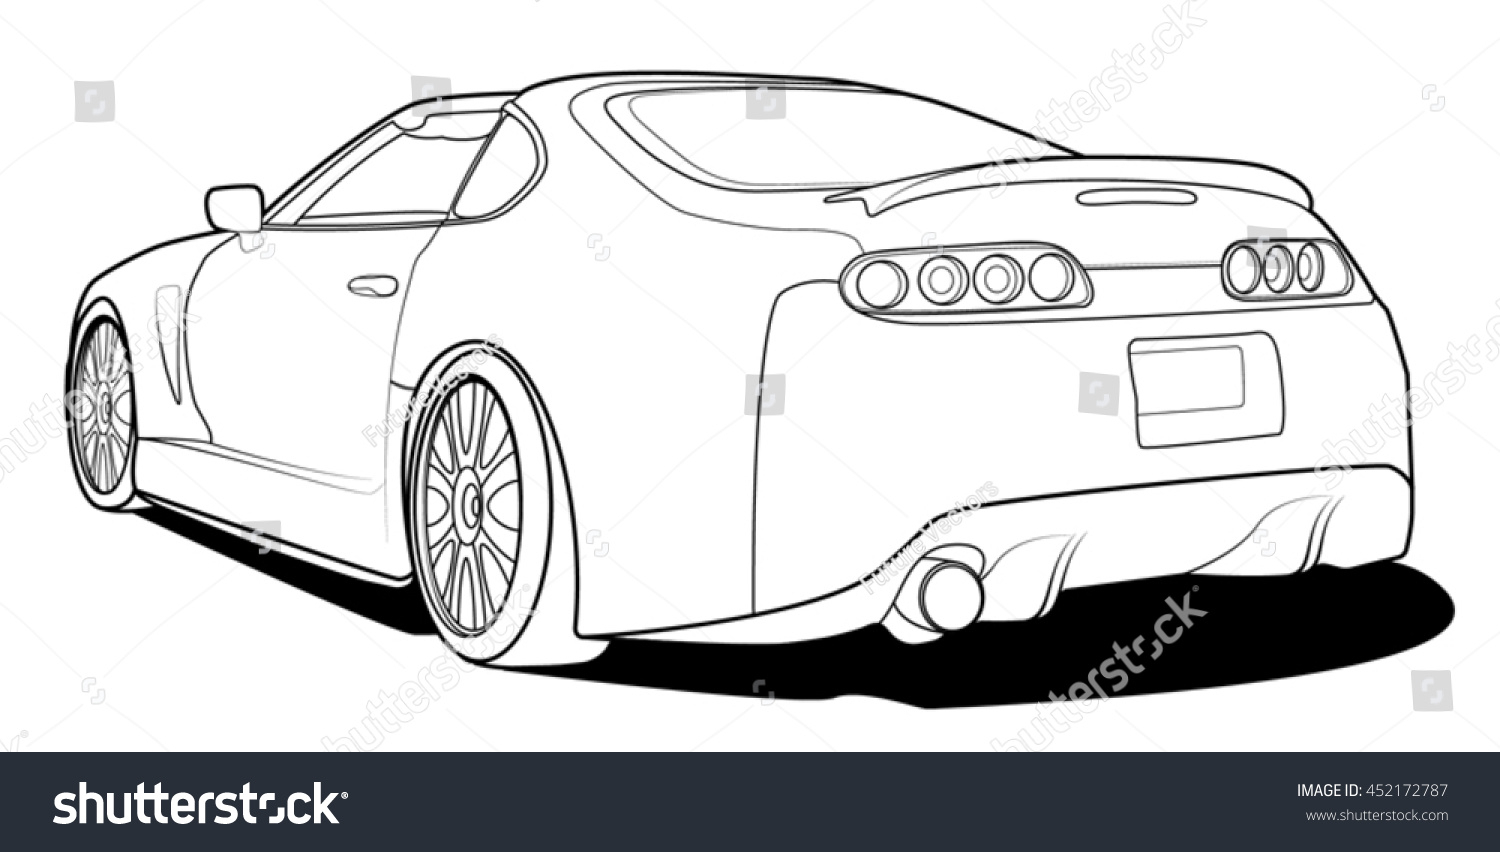 1500x852 Outline Of Sports Car